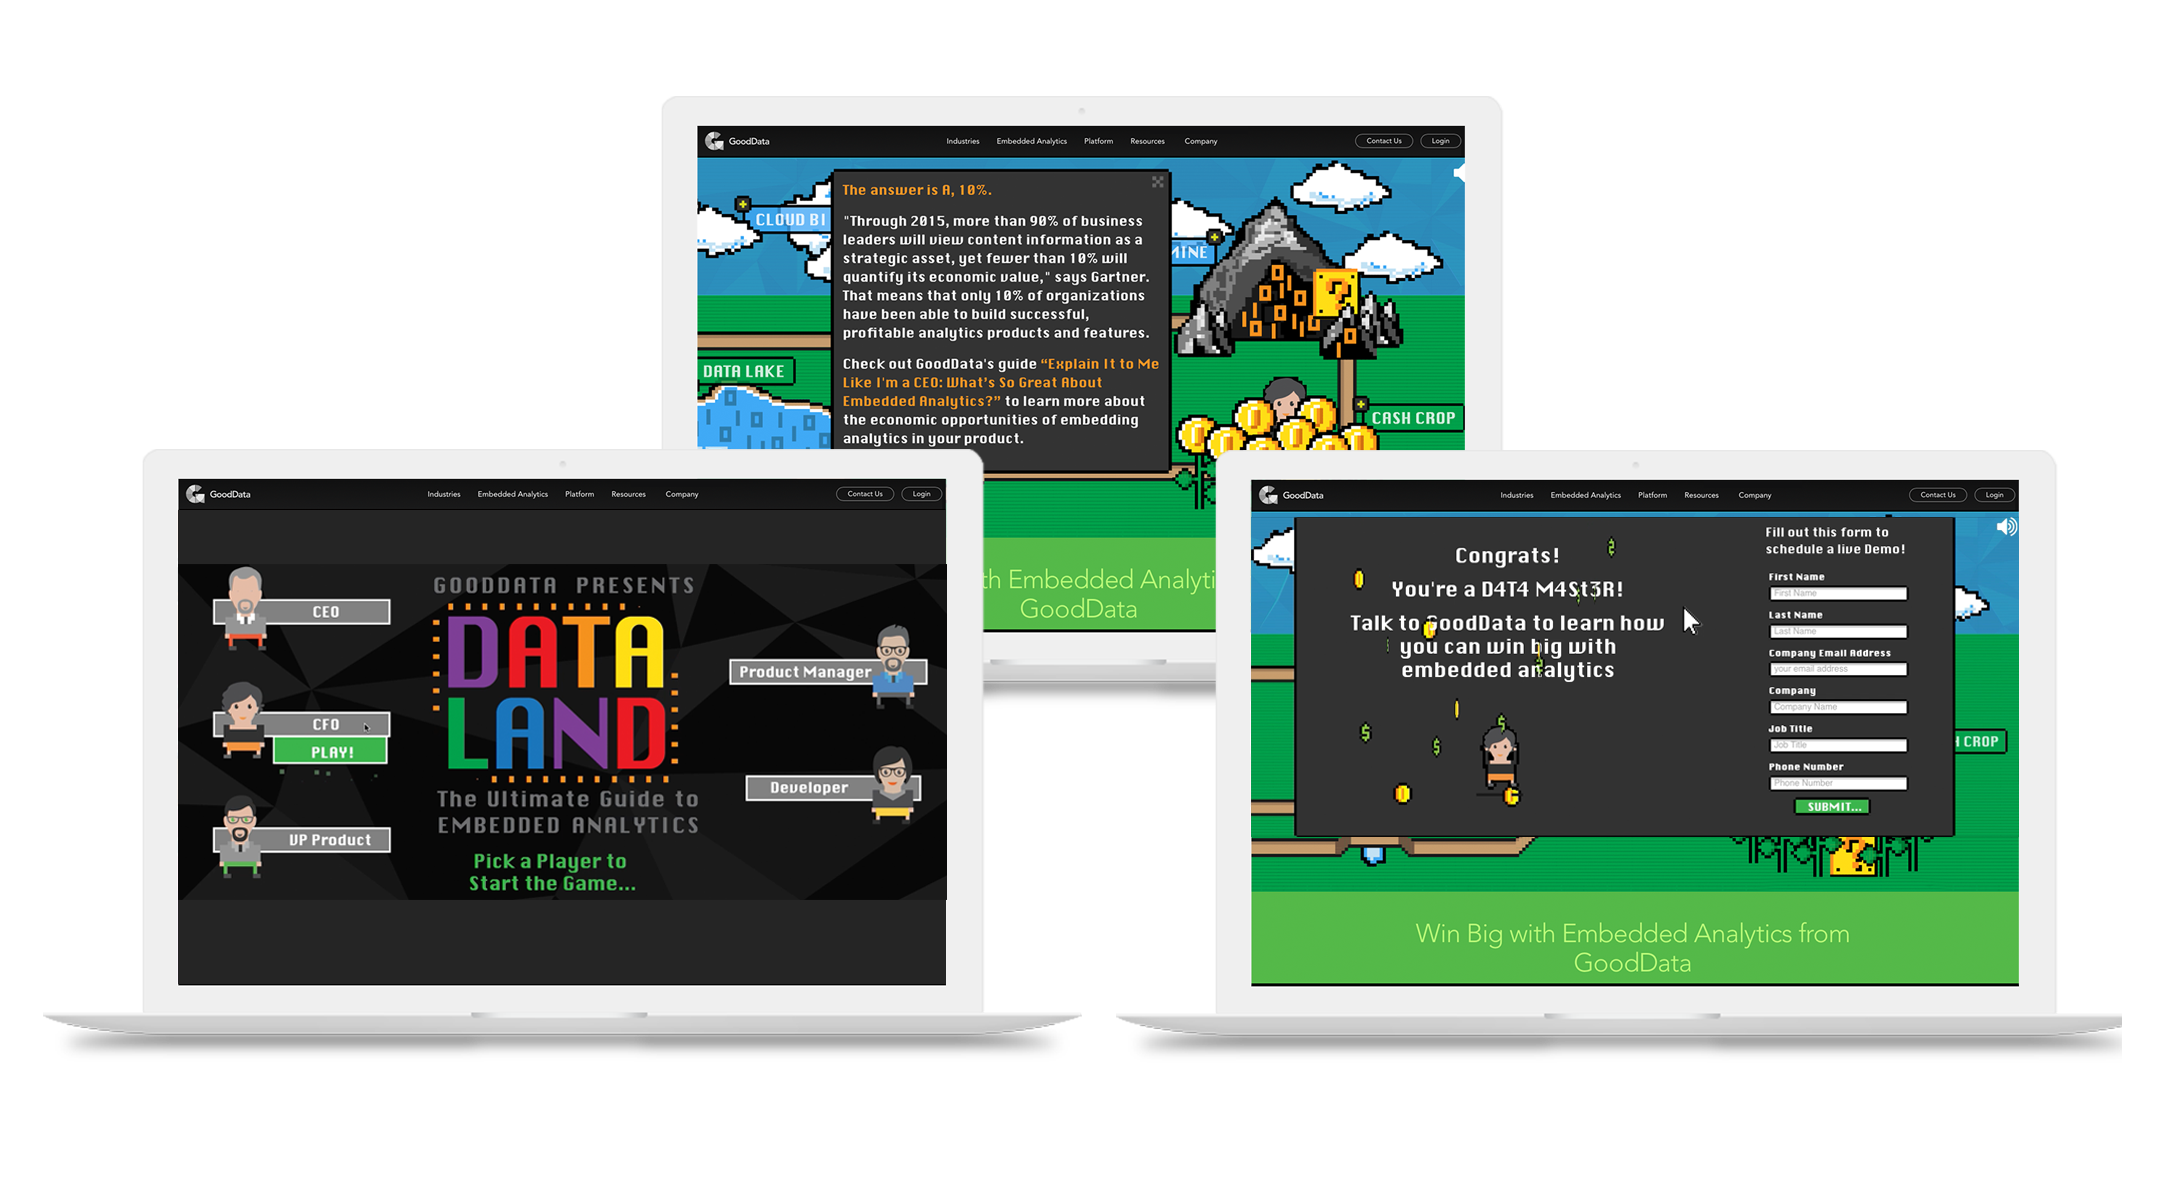 dataland experience gaming for data analytics customized around each of GoodData's defined buyer personas